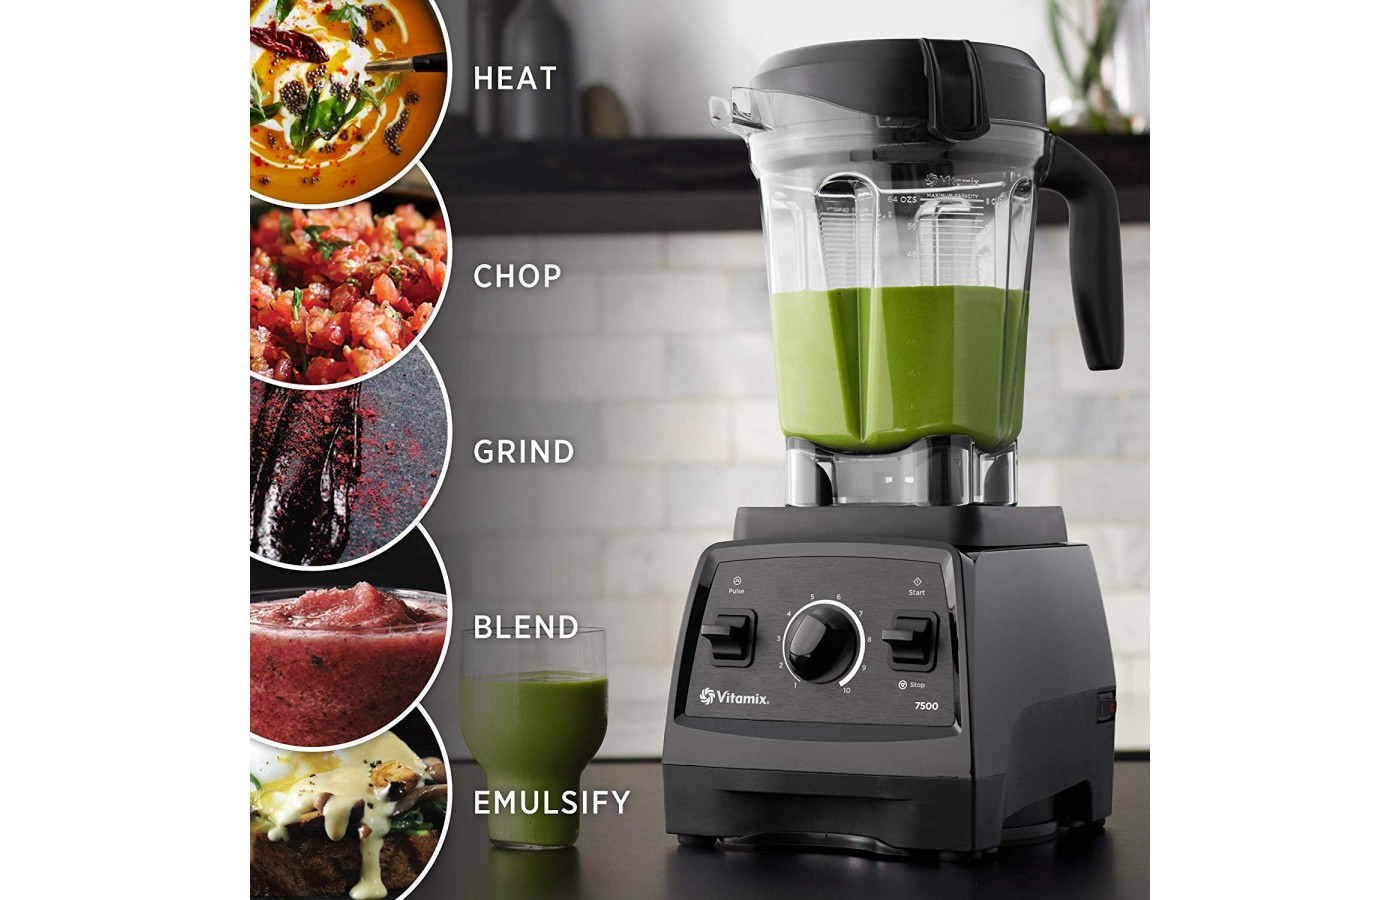 The blender does more than blend drinks and smoothies.